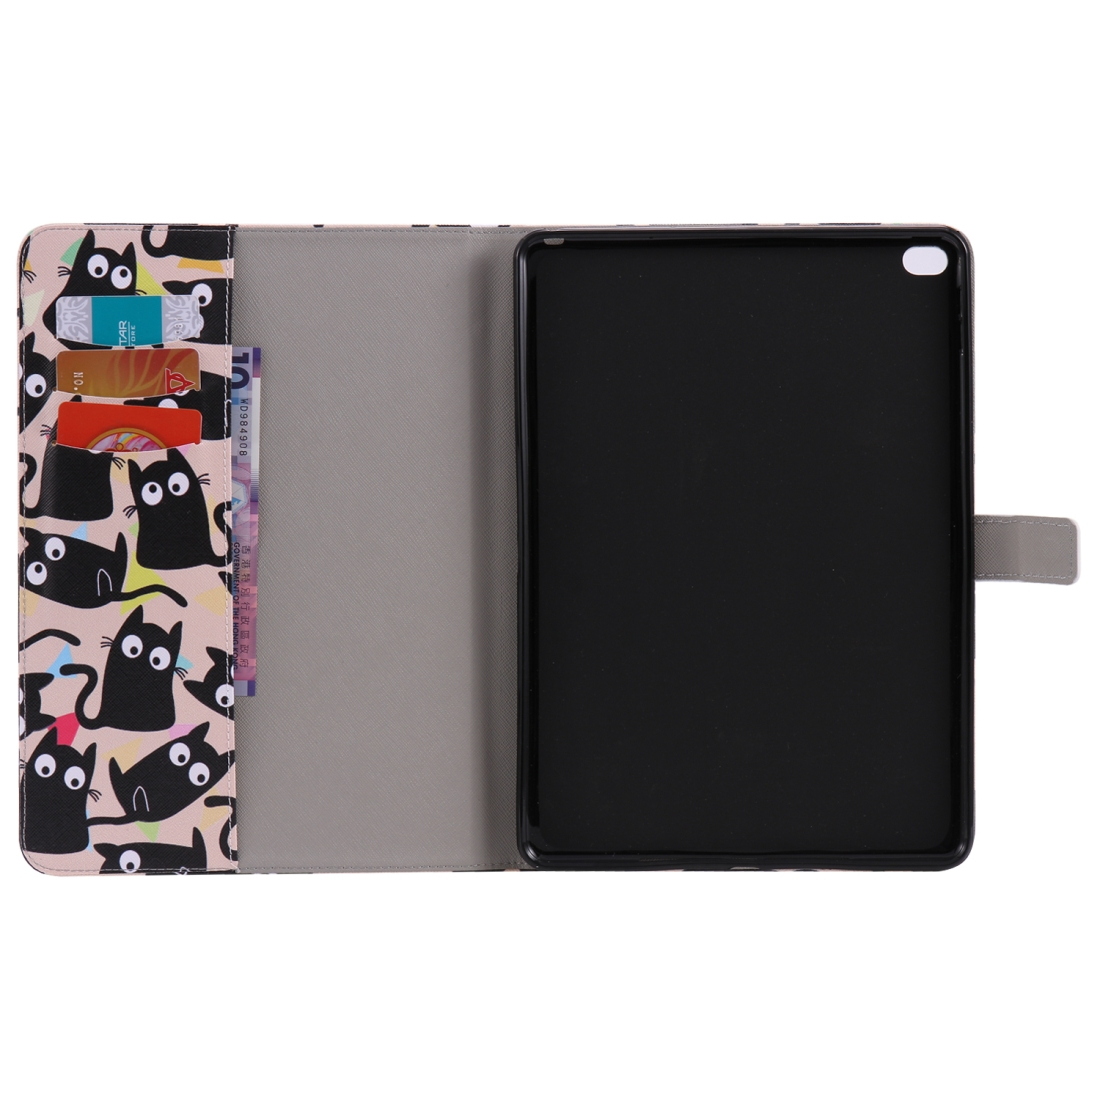 iPad 5th Generation Case Fits iPad 5 & 6, Leather With A Slim Profile & Auto Sleep (Little Cat)